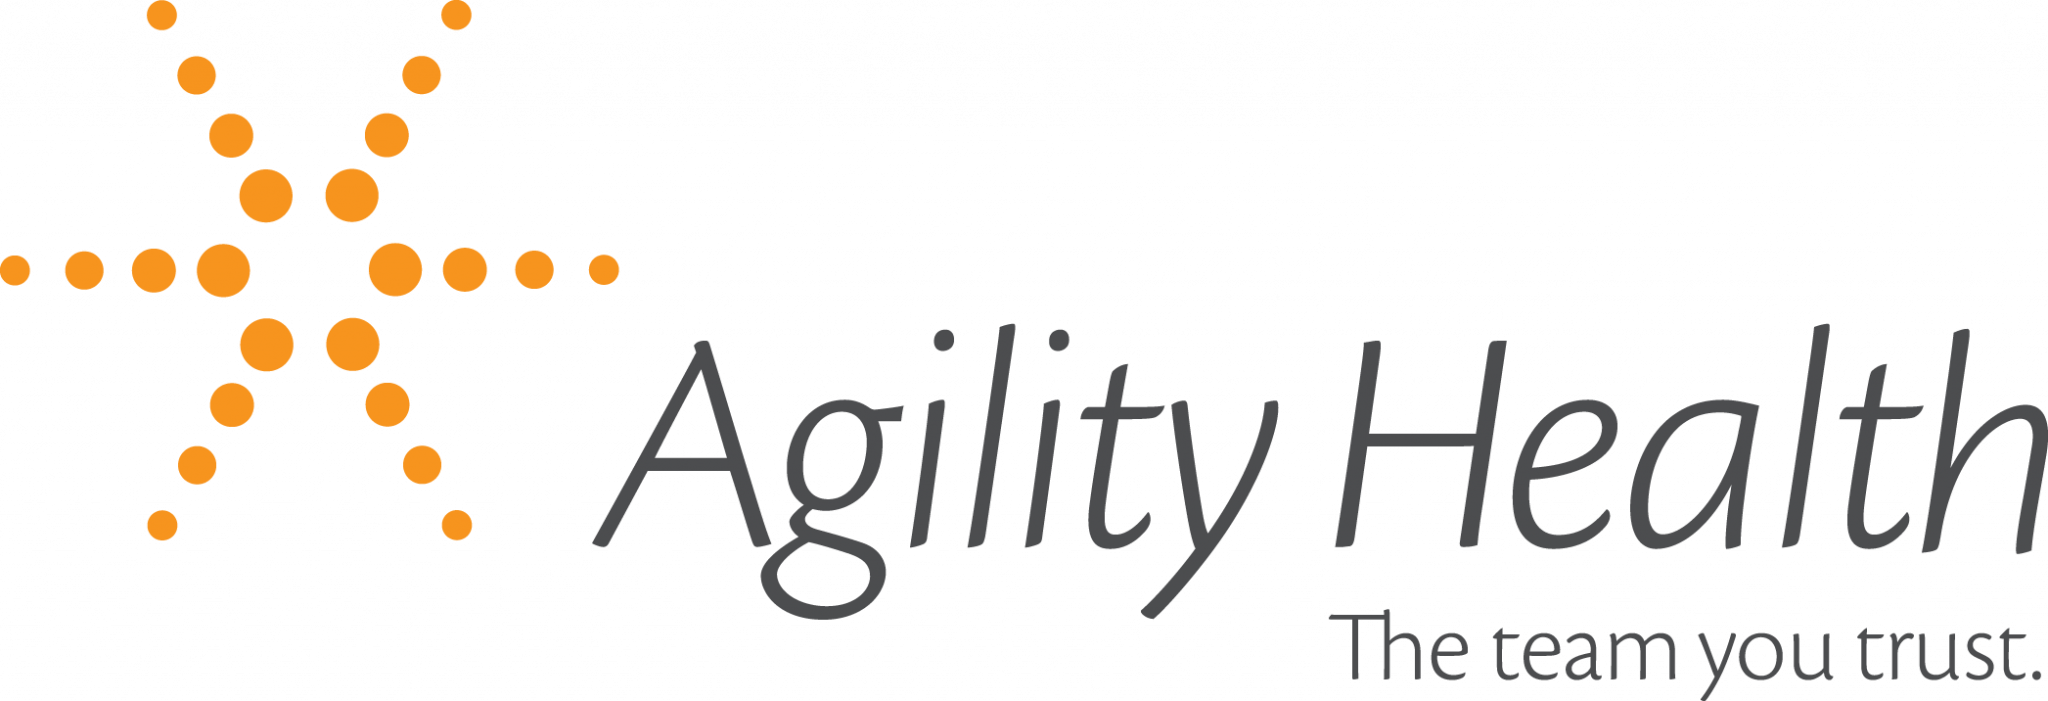 Home Health Care Services by Agility Health in the San Francisco Bay Area Customized to Meet Client Needs